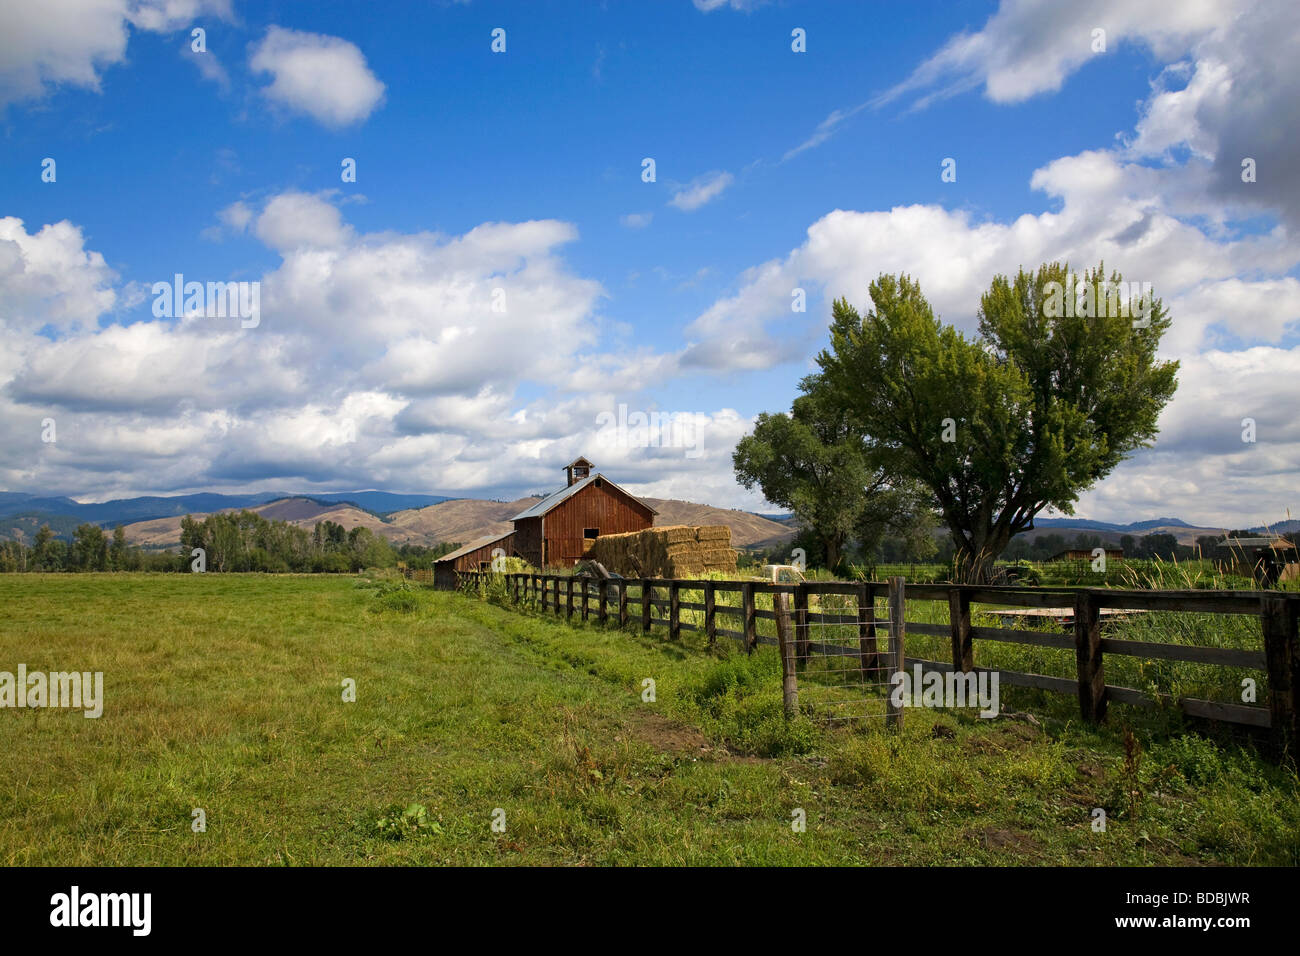 An old red barn and haystack on a ranch near Halfway Oregon on the slopes of the Wallowa Mountains in eastern Oregon - Stock Image